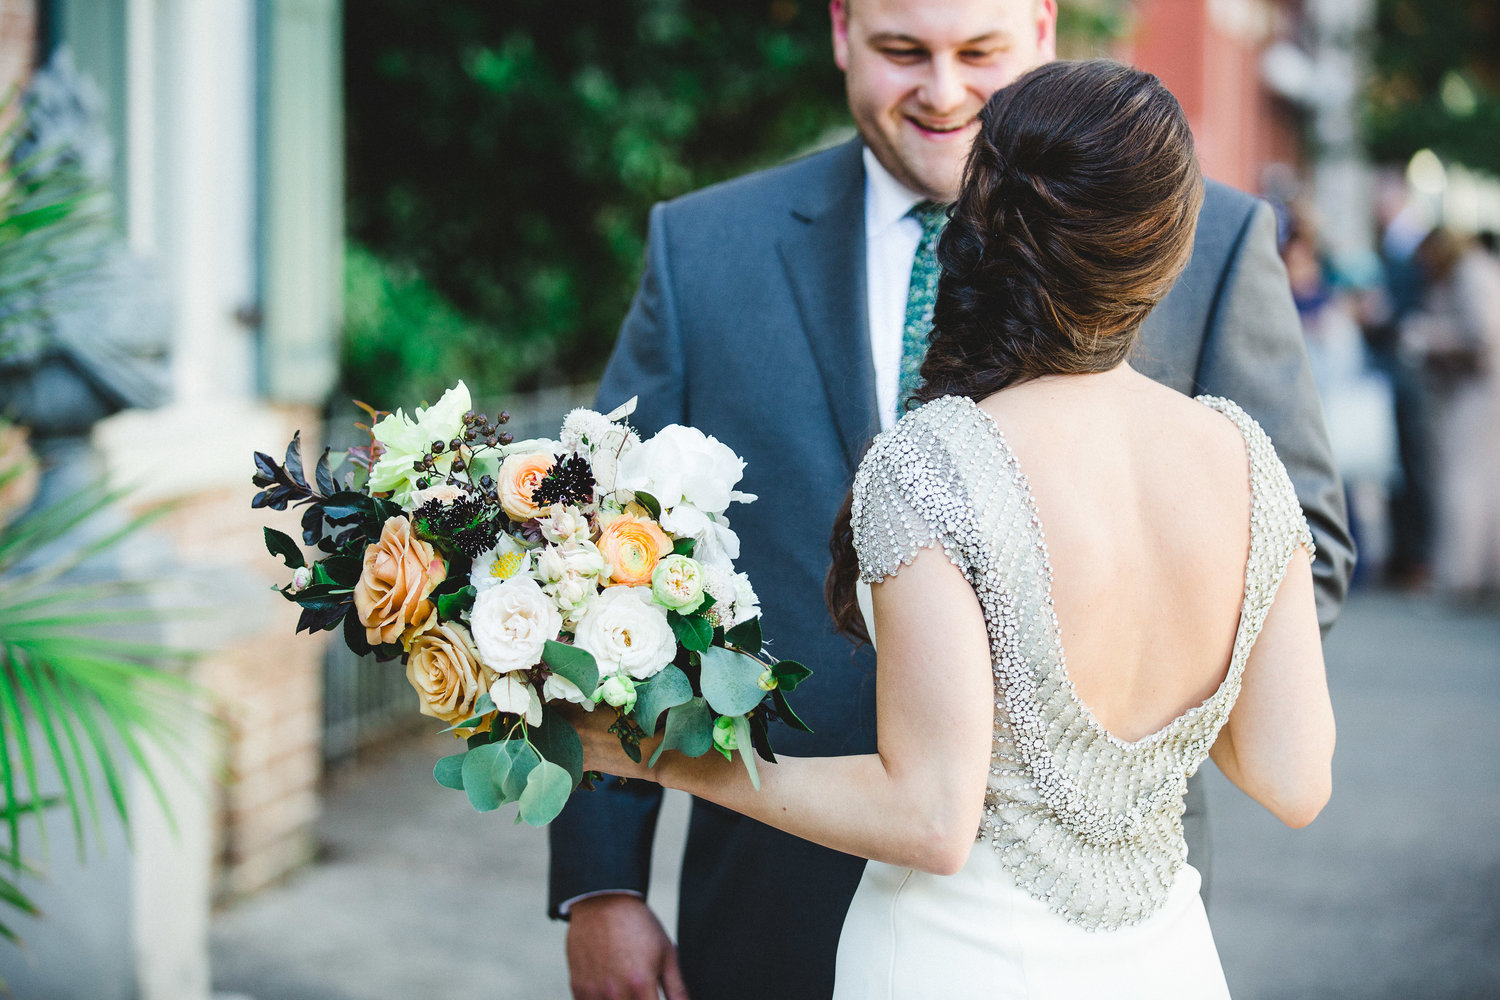 izzy-hudgins-photography-savannah-wedding-ivory-and-beau-bridal-boutique-savannah-wedding-planner-colonial-house-of-flowers-forsyth-park-wedding-old-fort-jackson-wedding-squidwed-films-savannah-boutique-savannah-weddings-12.jpg